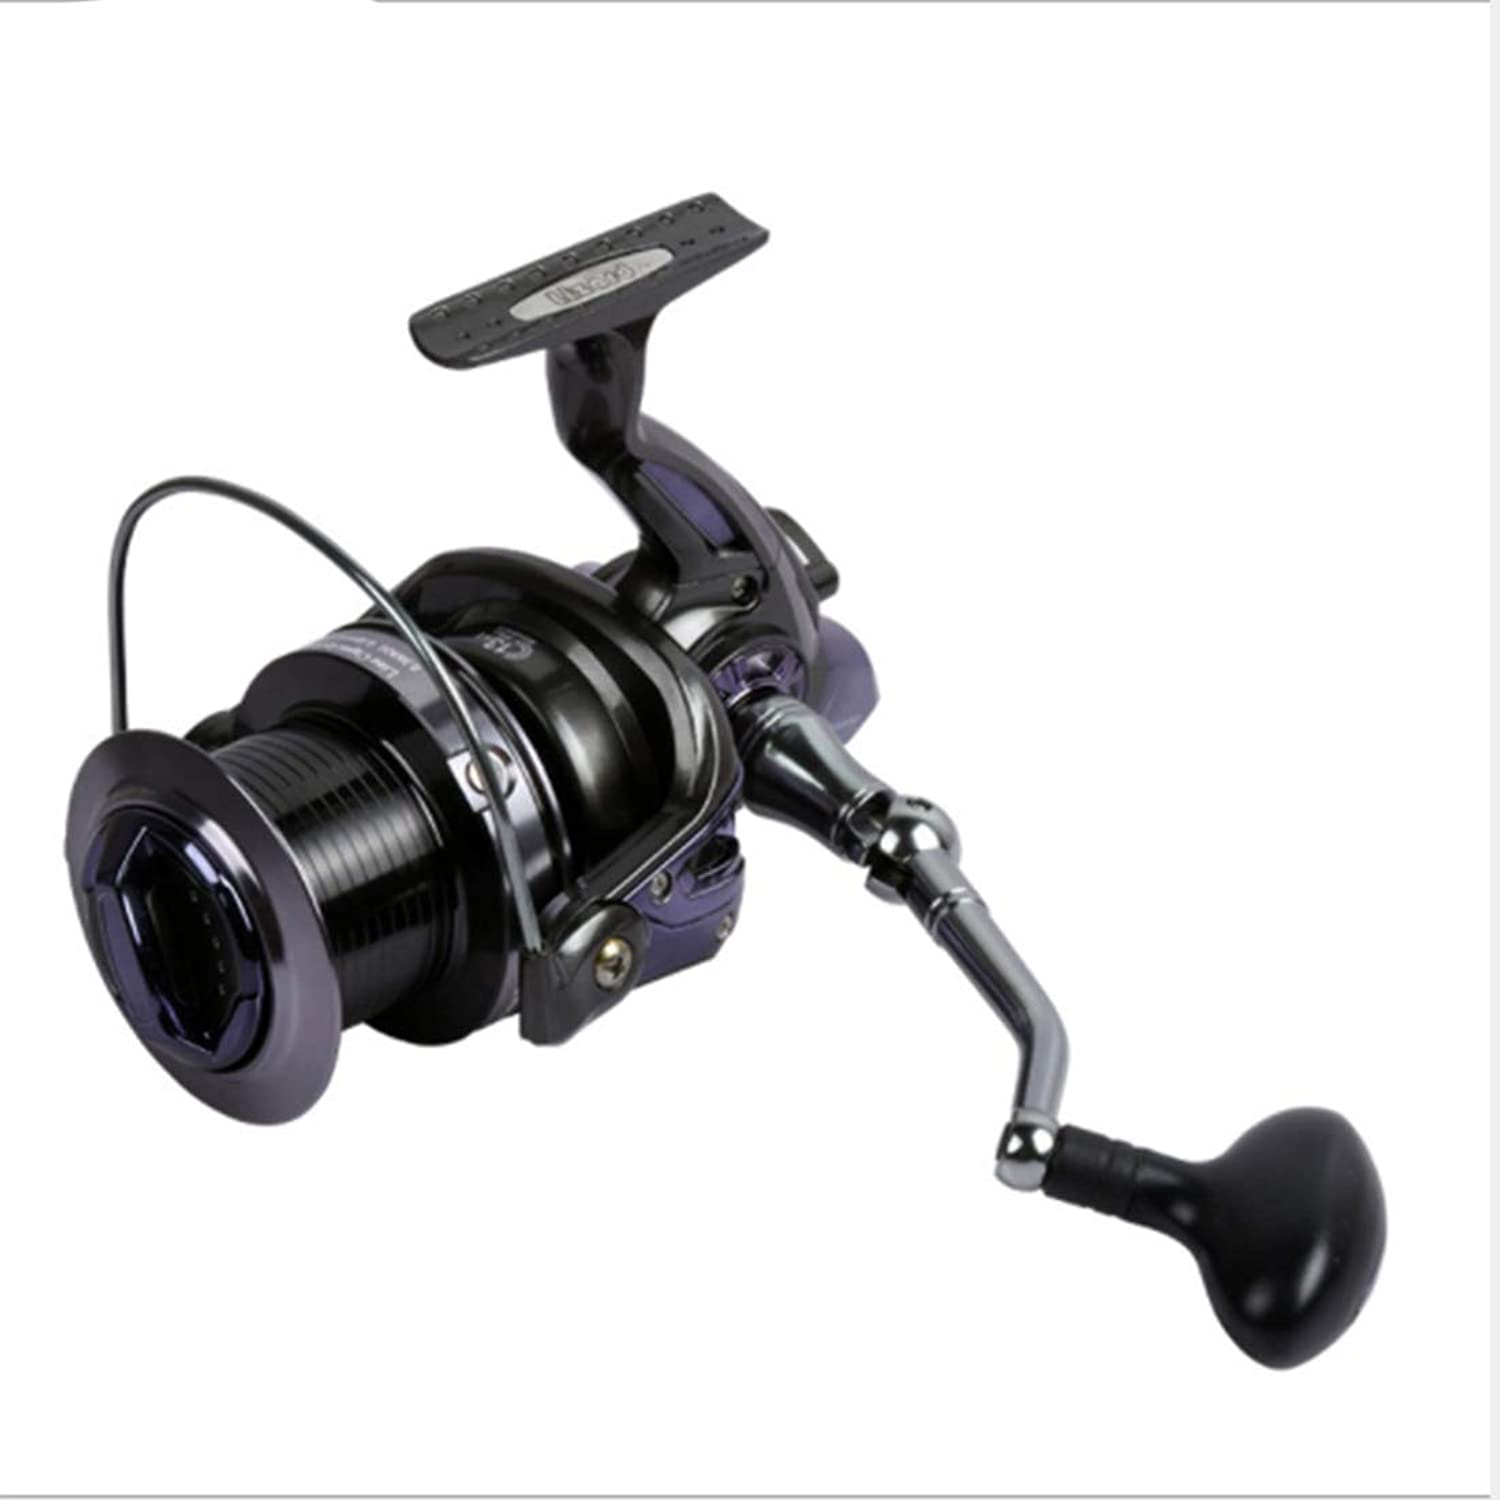 RABILTY Spinning Fishing Reel 12+1 Bearings Left Right Interchangeable Handle for Saltwater Freshwater Fishing